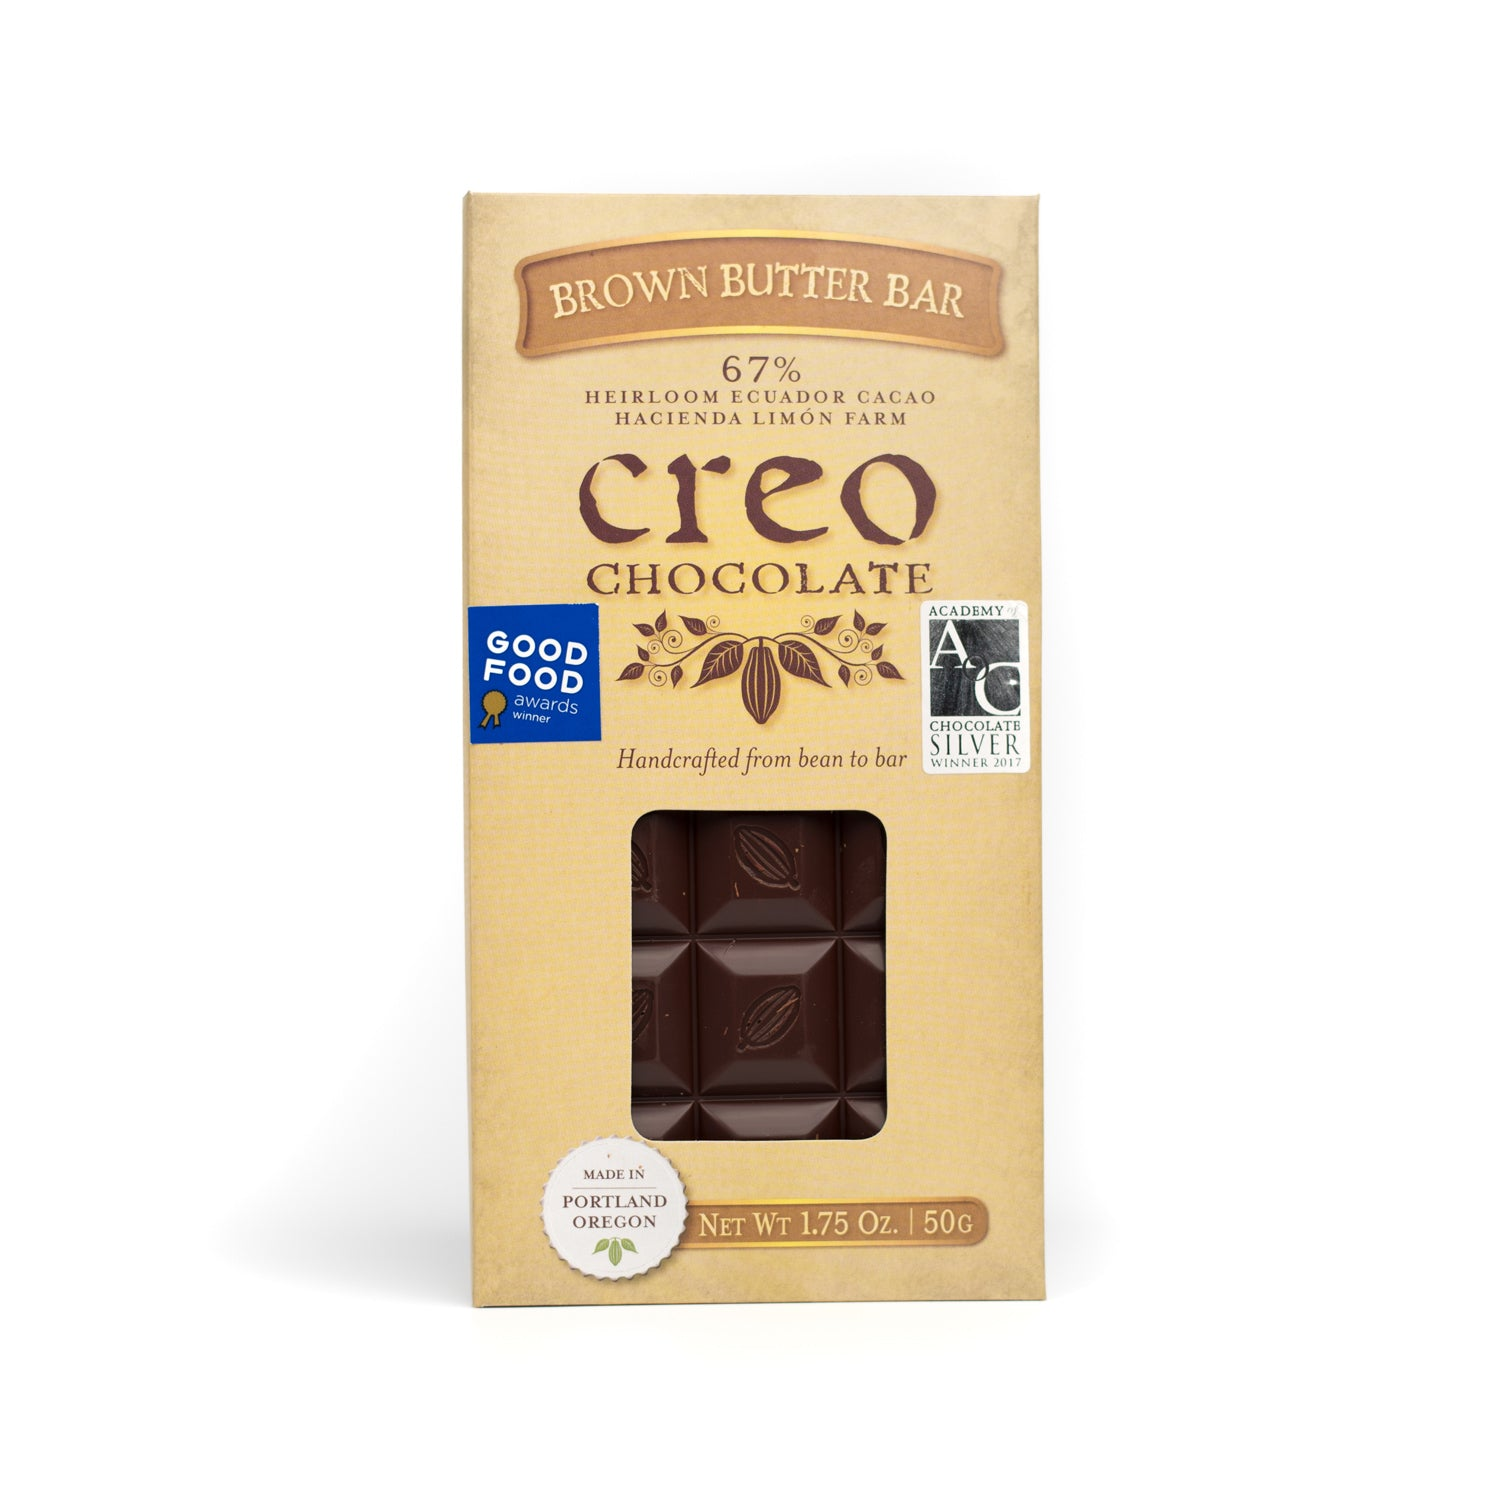 Brown Butter Bar - Creo Chocolate